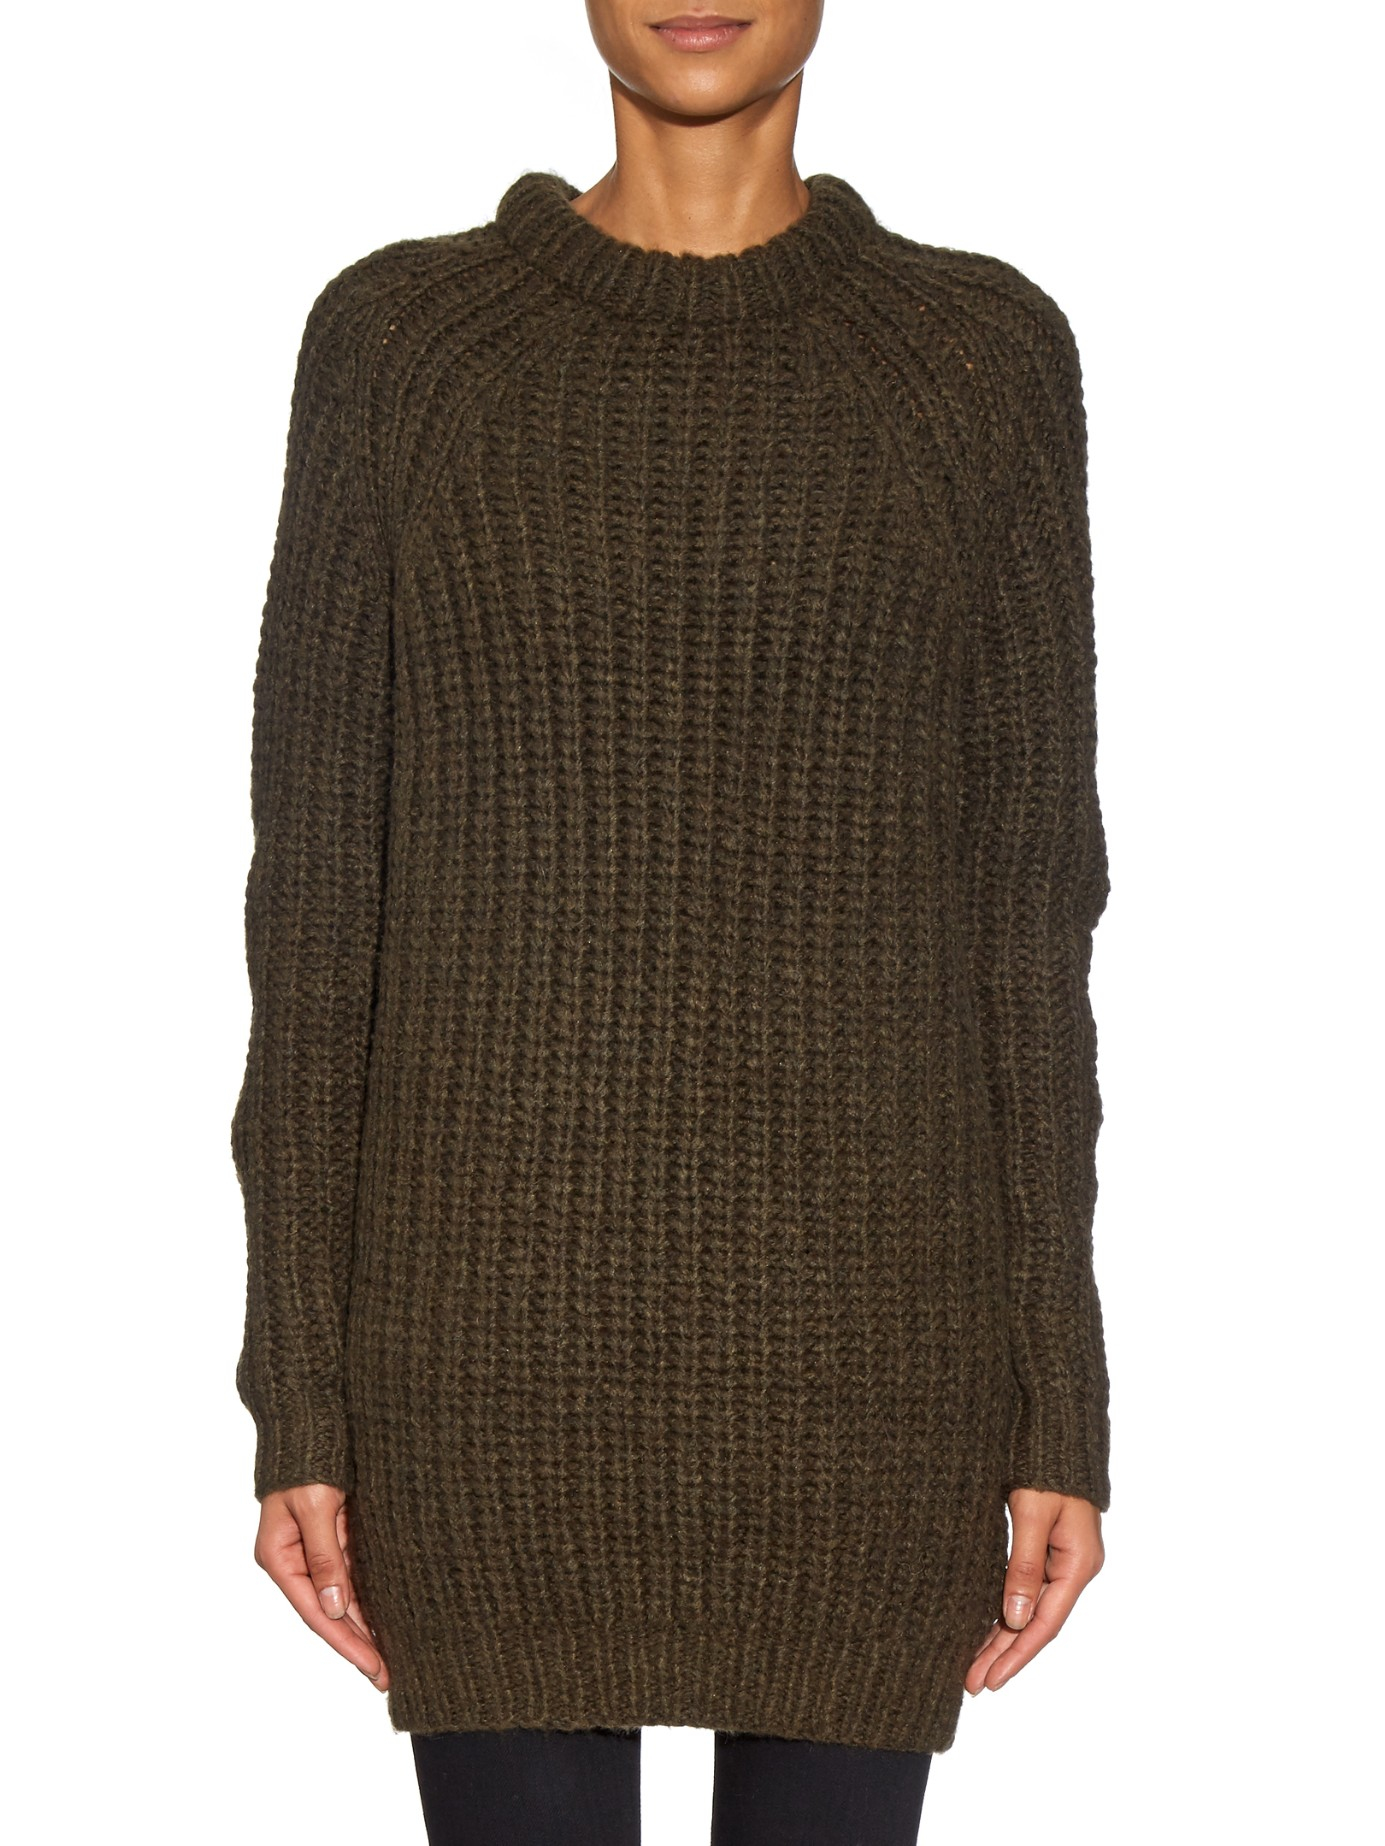 fedbbc908 Lyst - NLST Fisherman Wool Sweater Dress in Natural